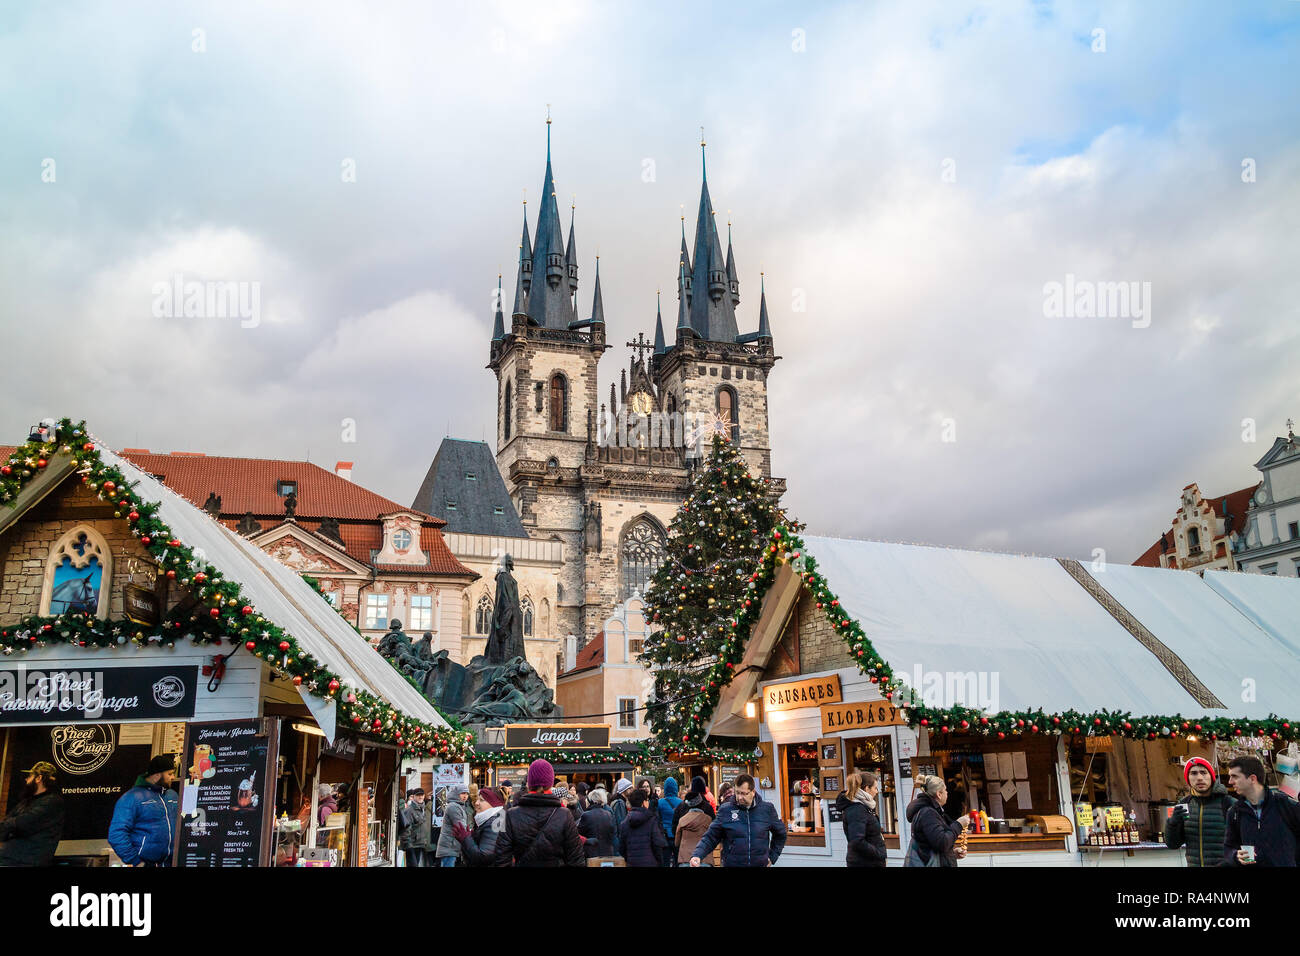 Festive Christmas market at the Old Town Square in Prague, Czech Republic. - Stock Image